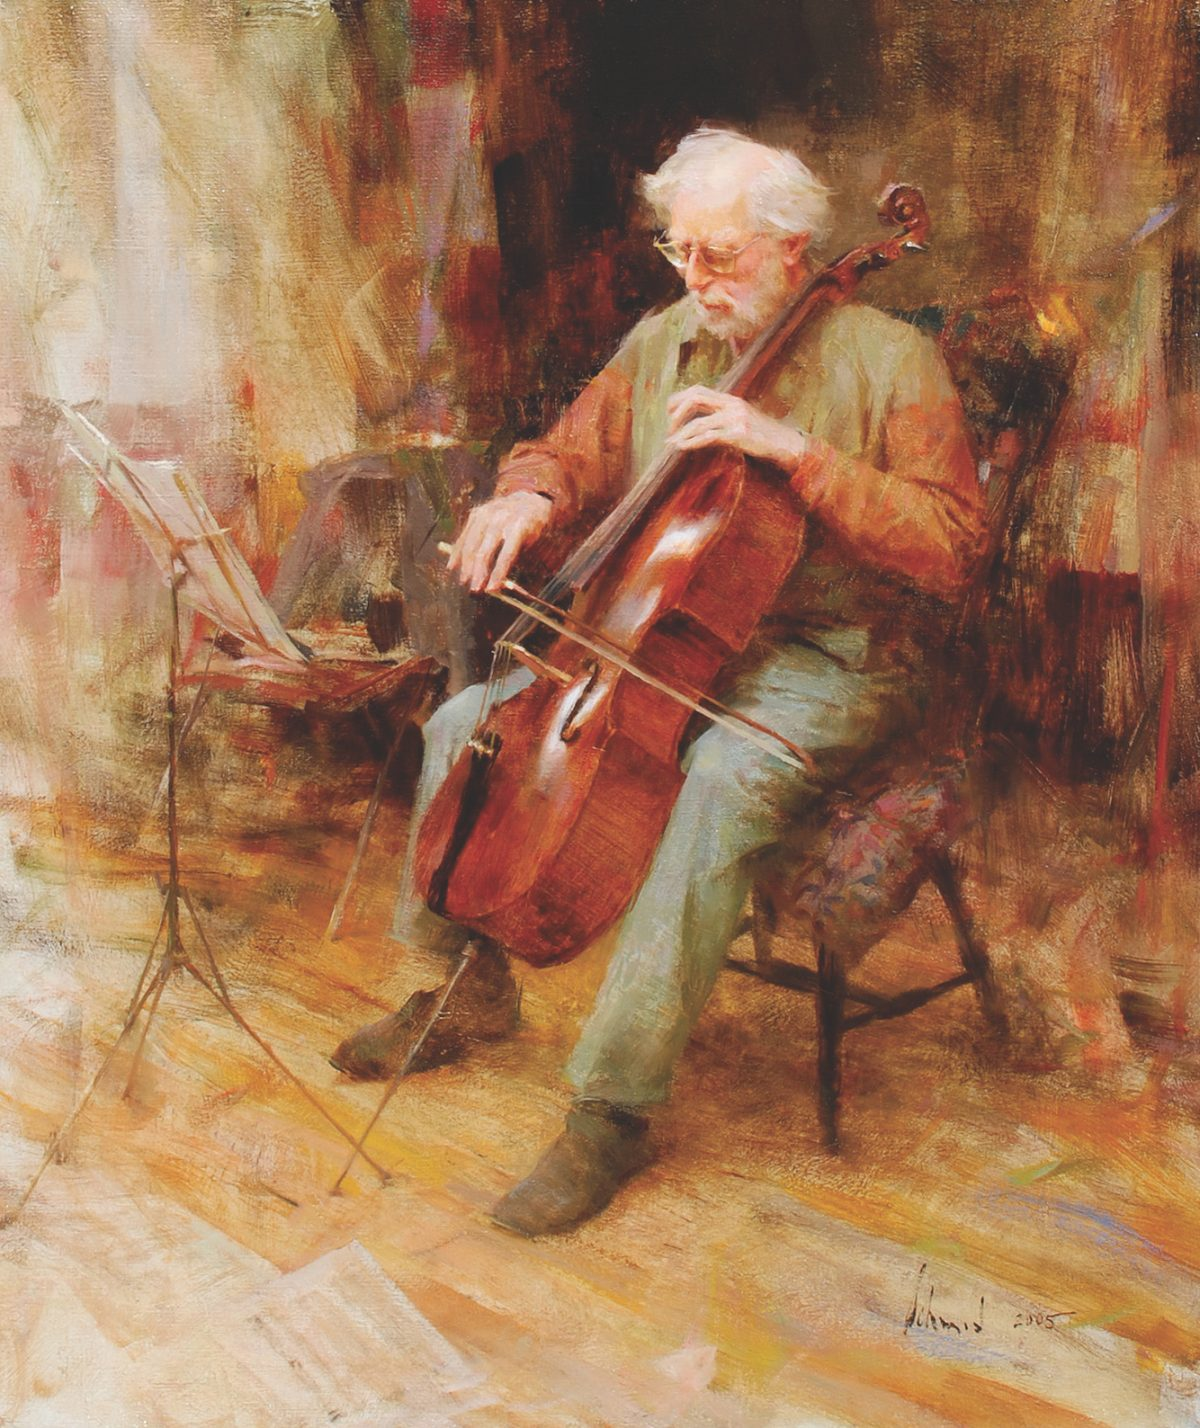 """""""David Wells, Cellist,"""" 2005, by Richard Schmid. Oil on canvas, 26 inches by 22 inches. (Courtesy of Tim Newton)"""